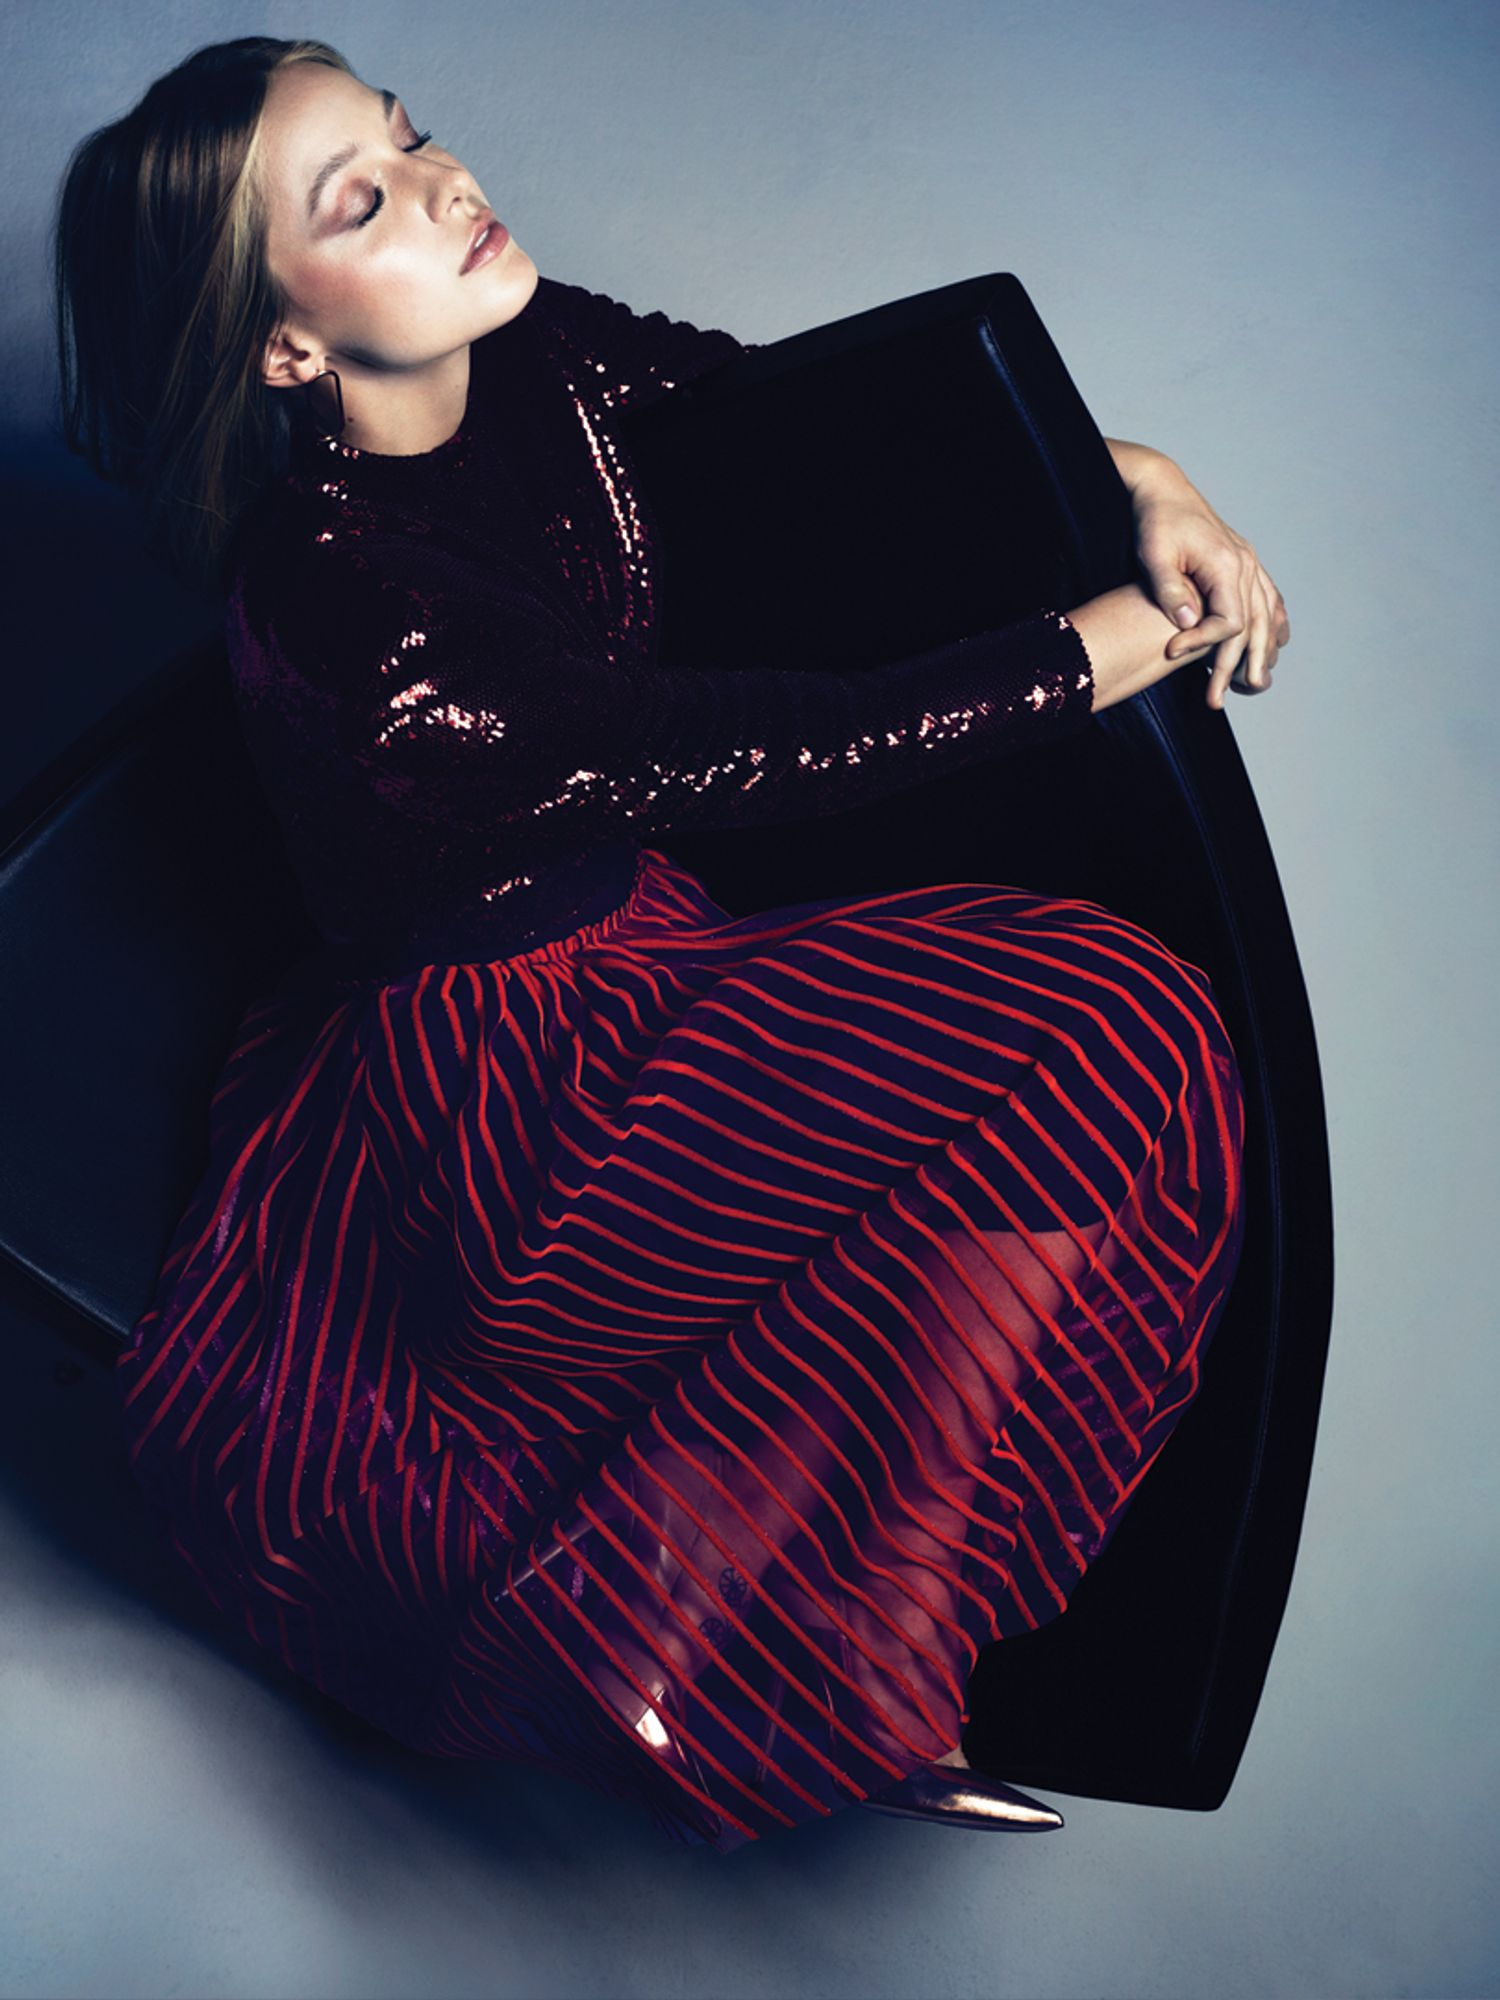 Supergirl's Melissa Benoist sits wearing a shiny dark purple top and red striped velvet skirt.